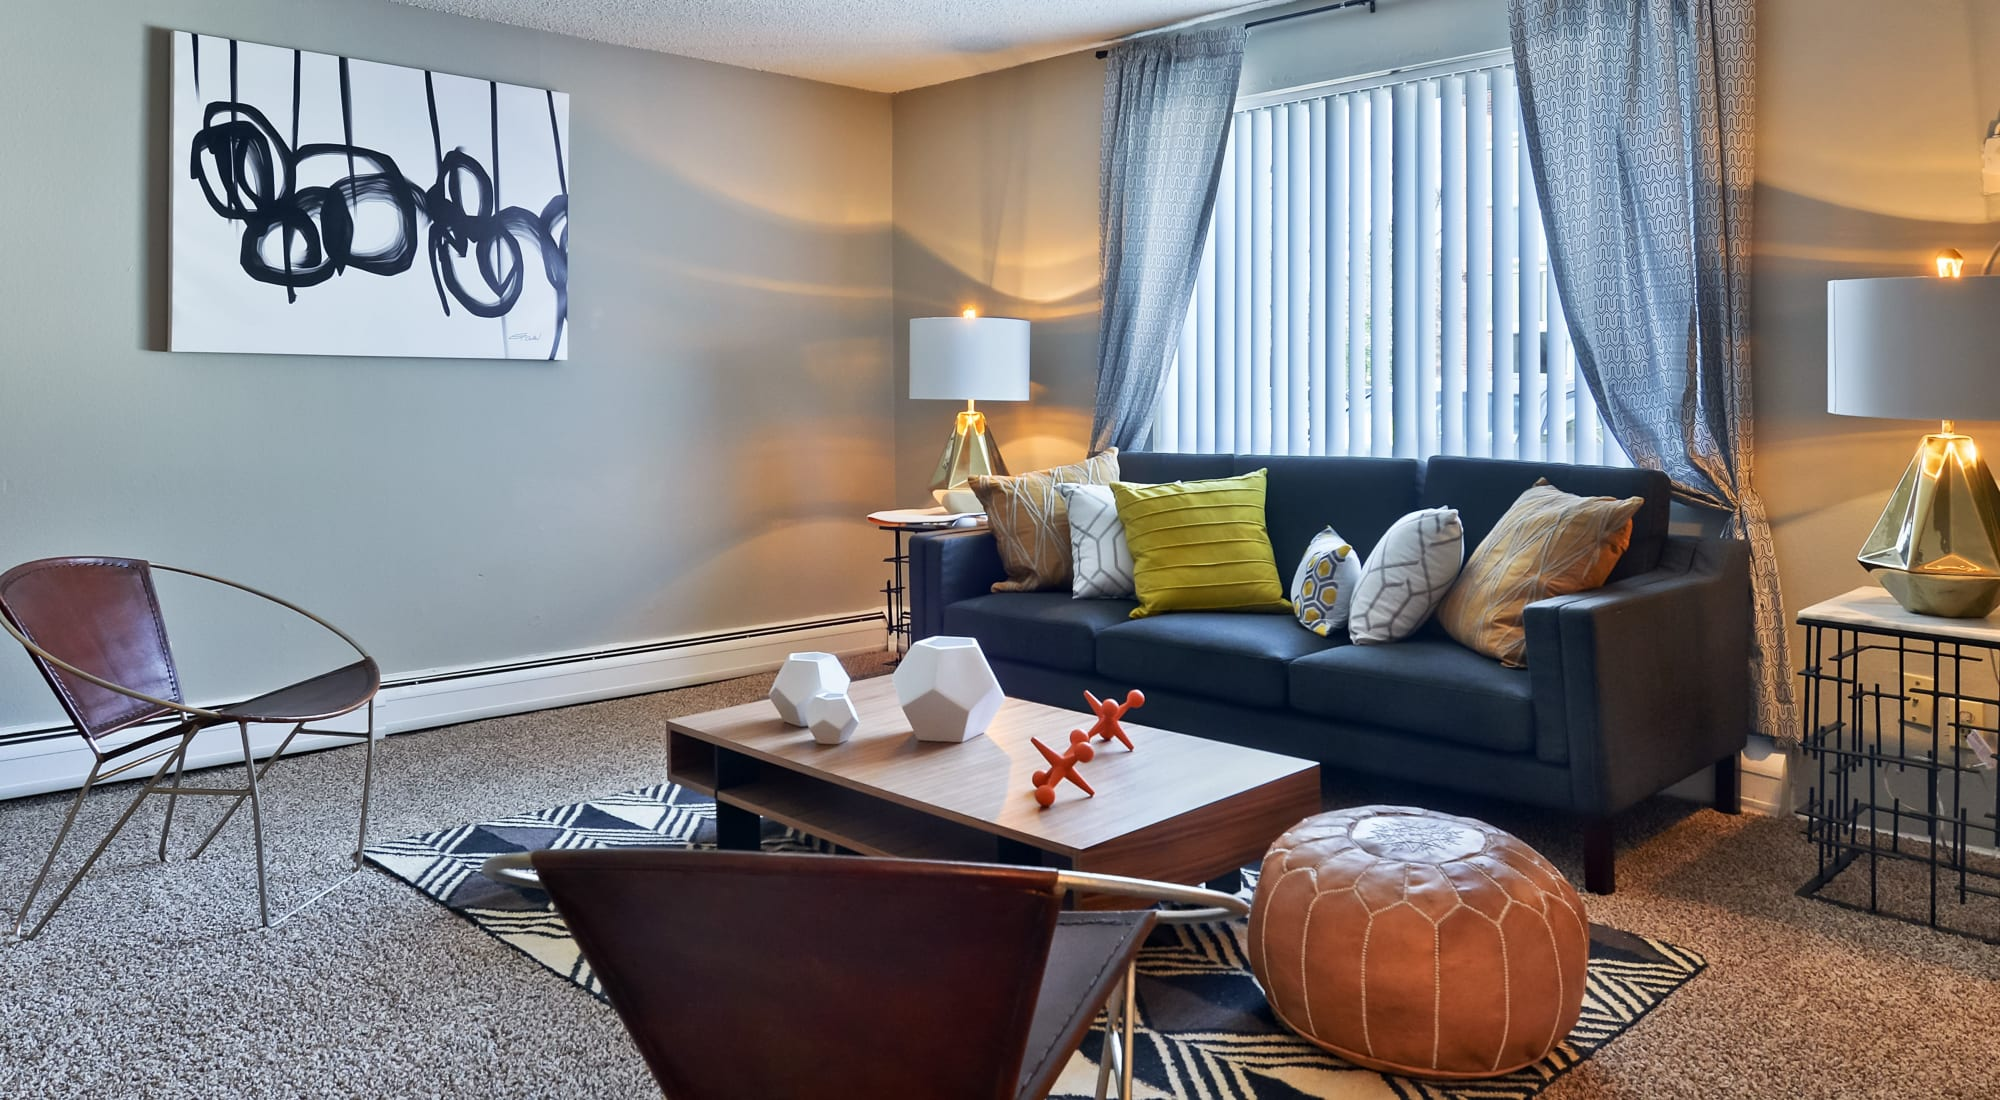 Schedule your tour of Ten 30 and 49 Apartments in Broomfield, Colorado